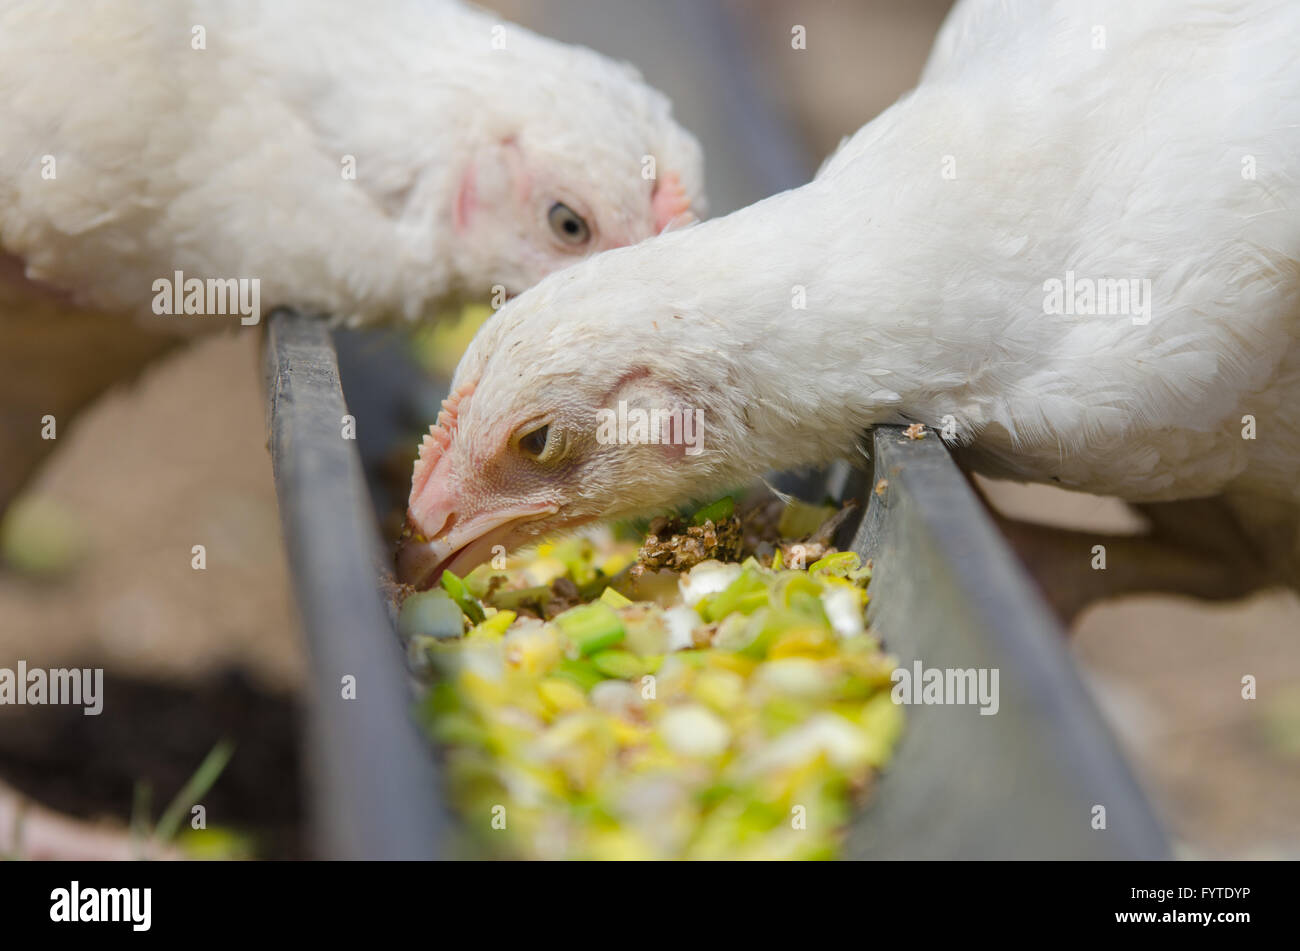 Younger chickens and turkeys, chickens pecking for food in the pan - Stock Image